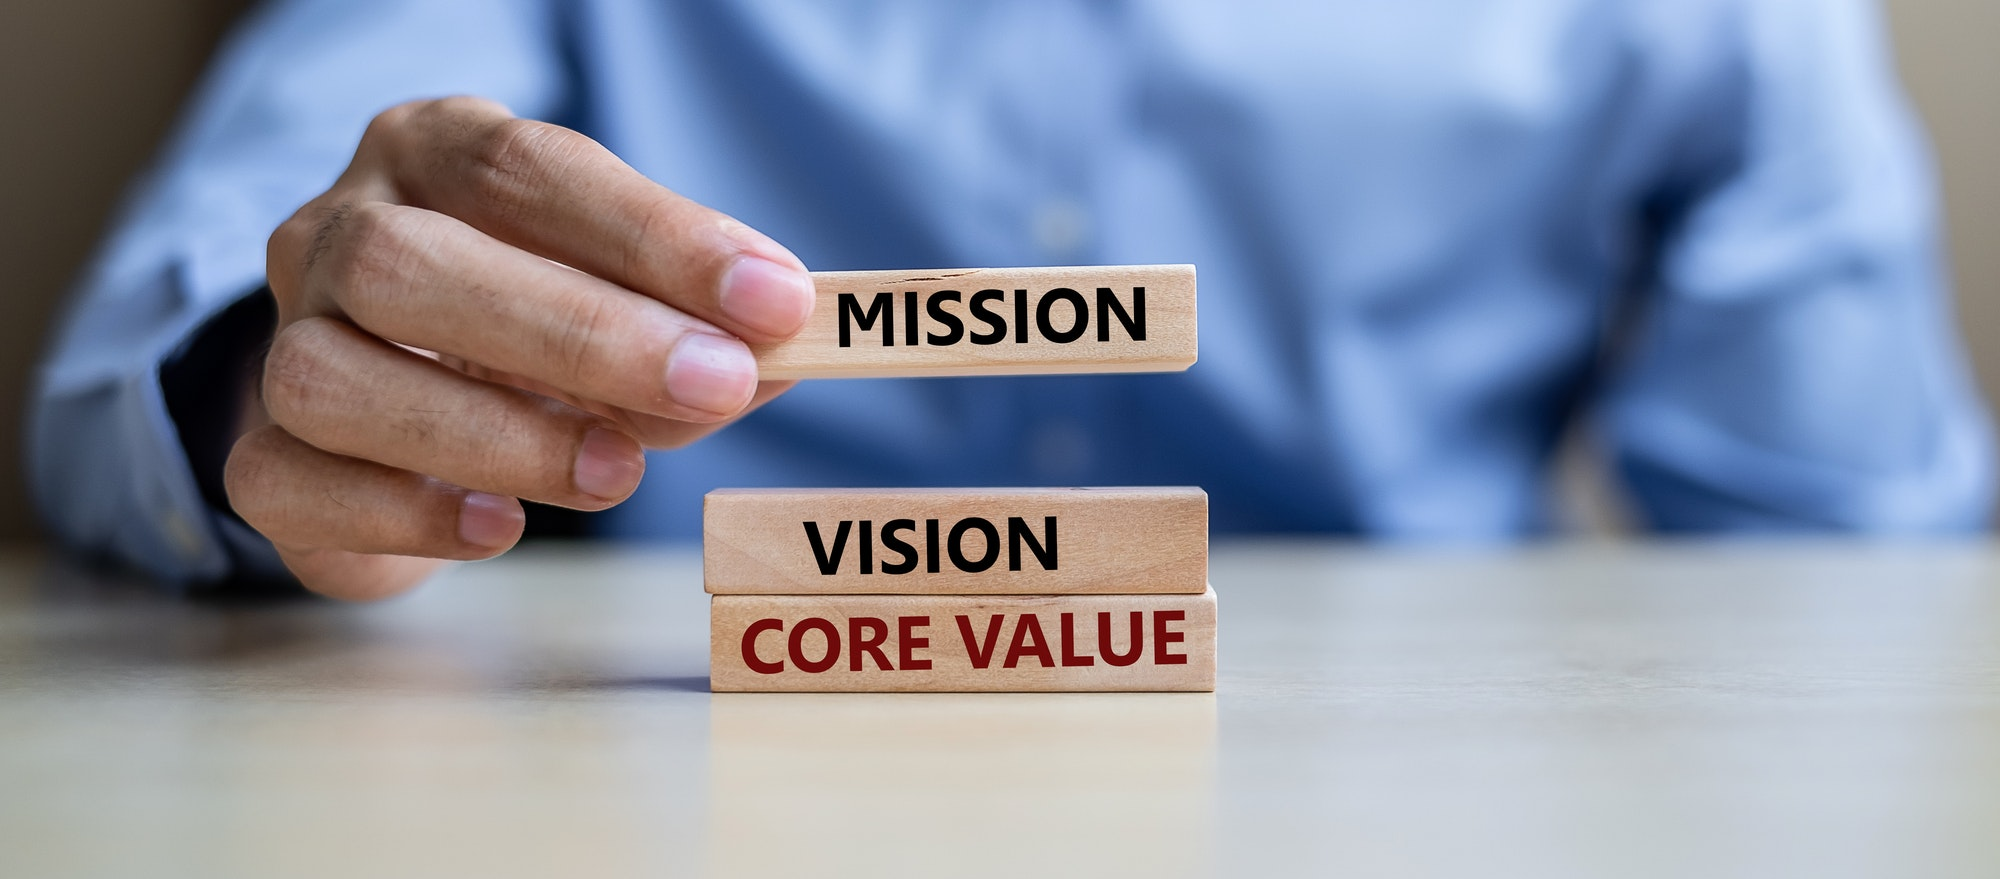 Mission Vision Core Value